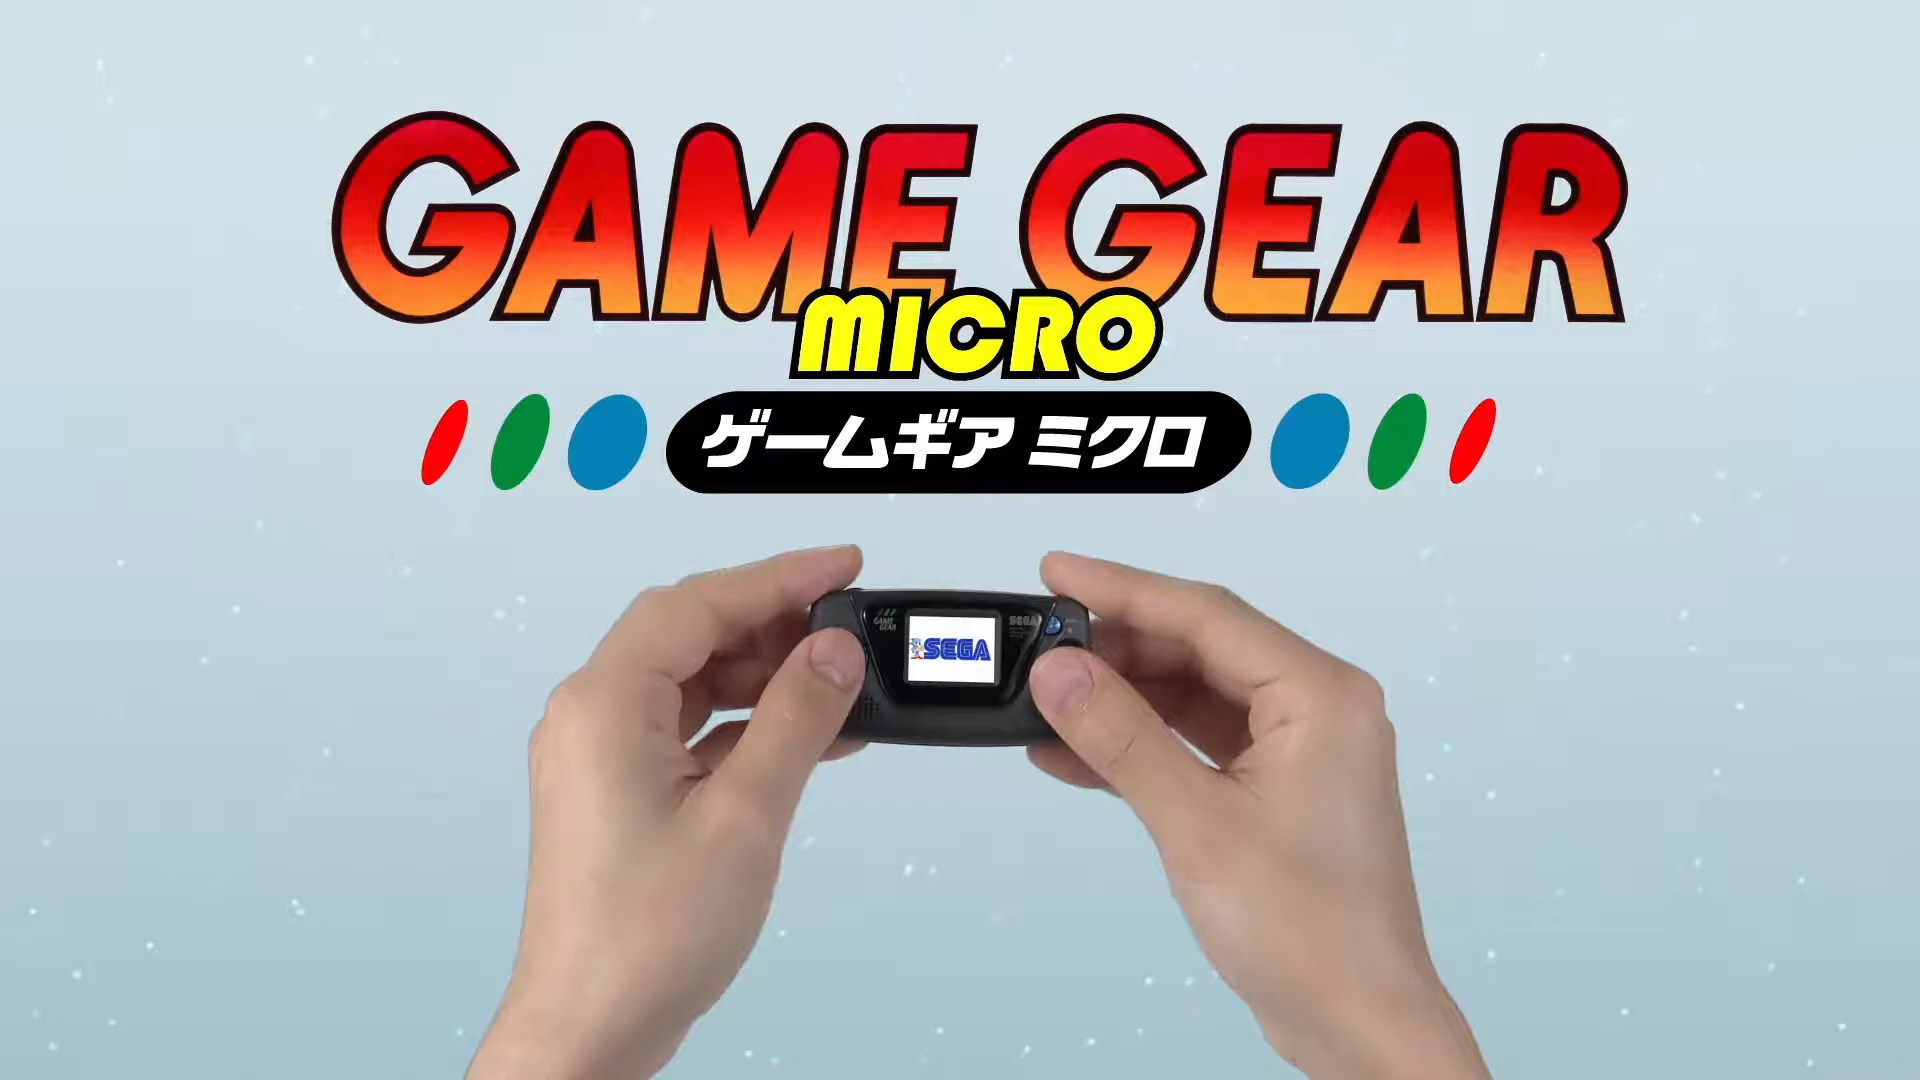 Photo of Realizing World May Soon End, Sega Announces Game Gear Micro